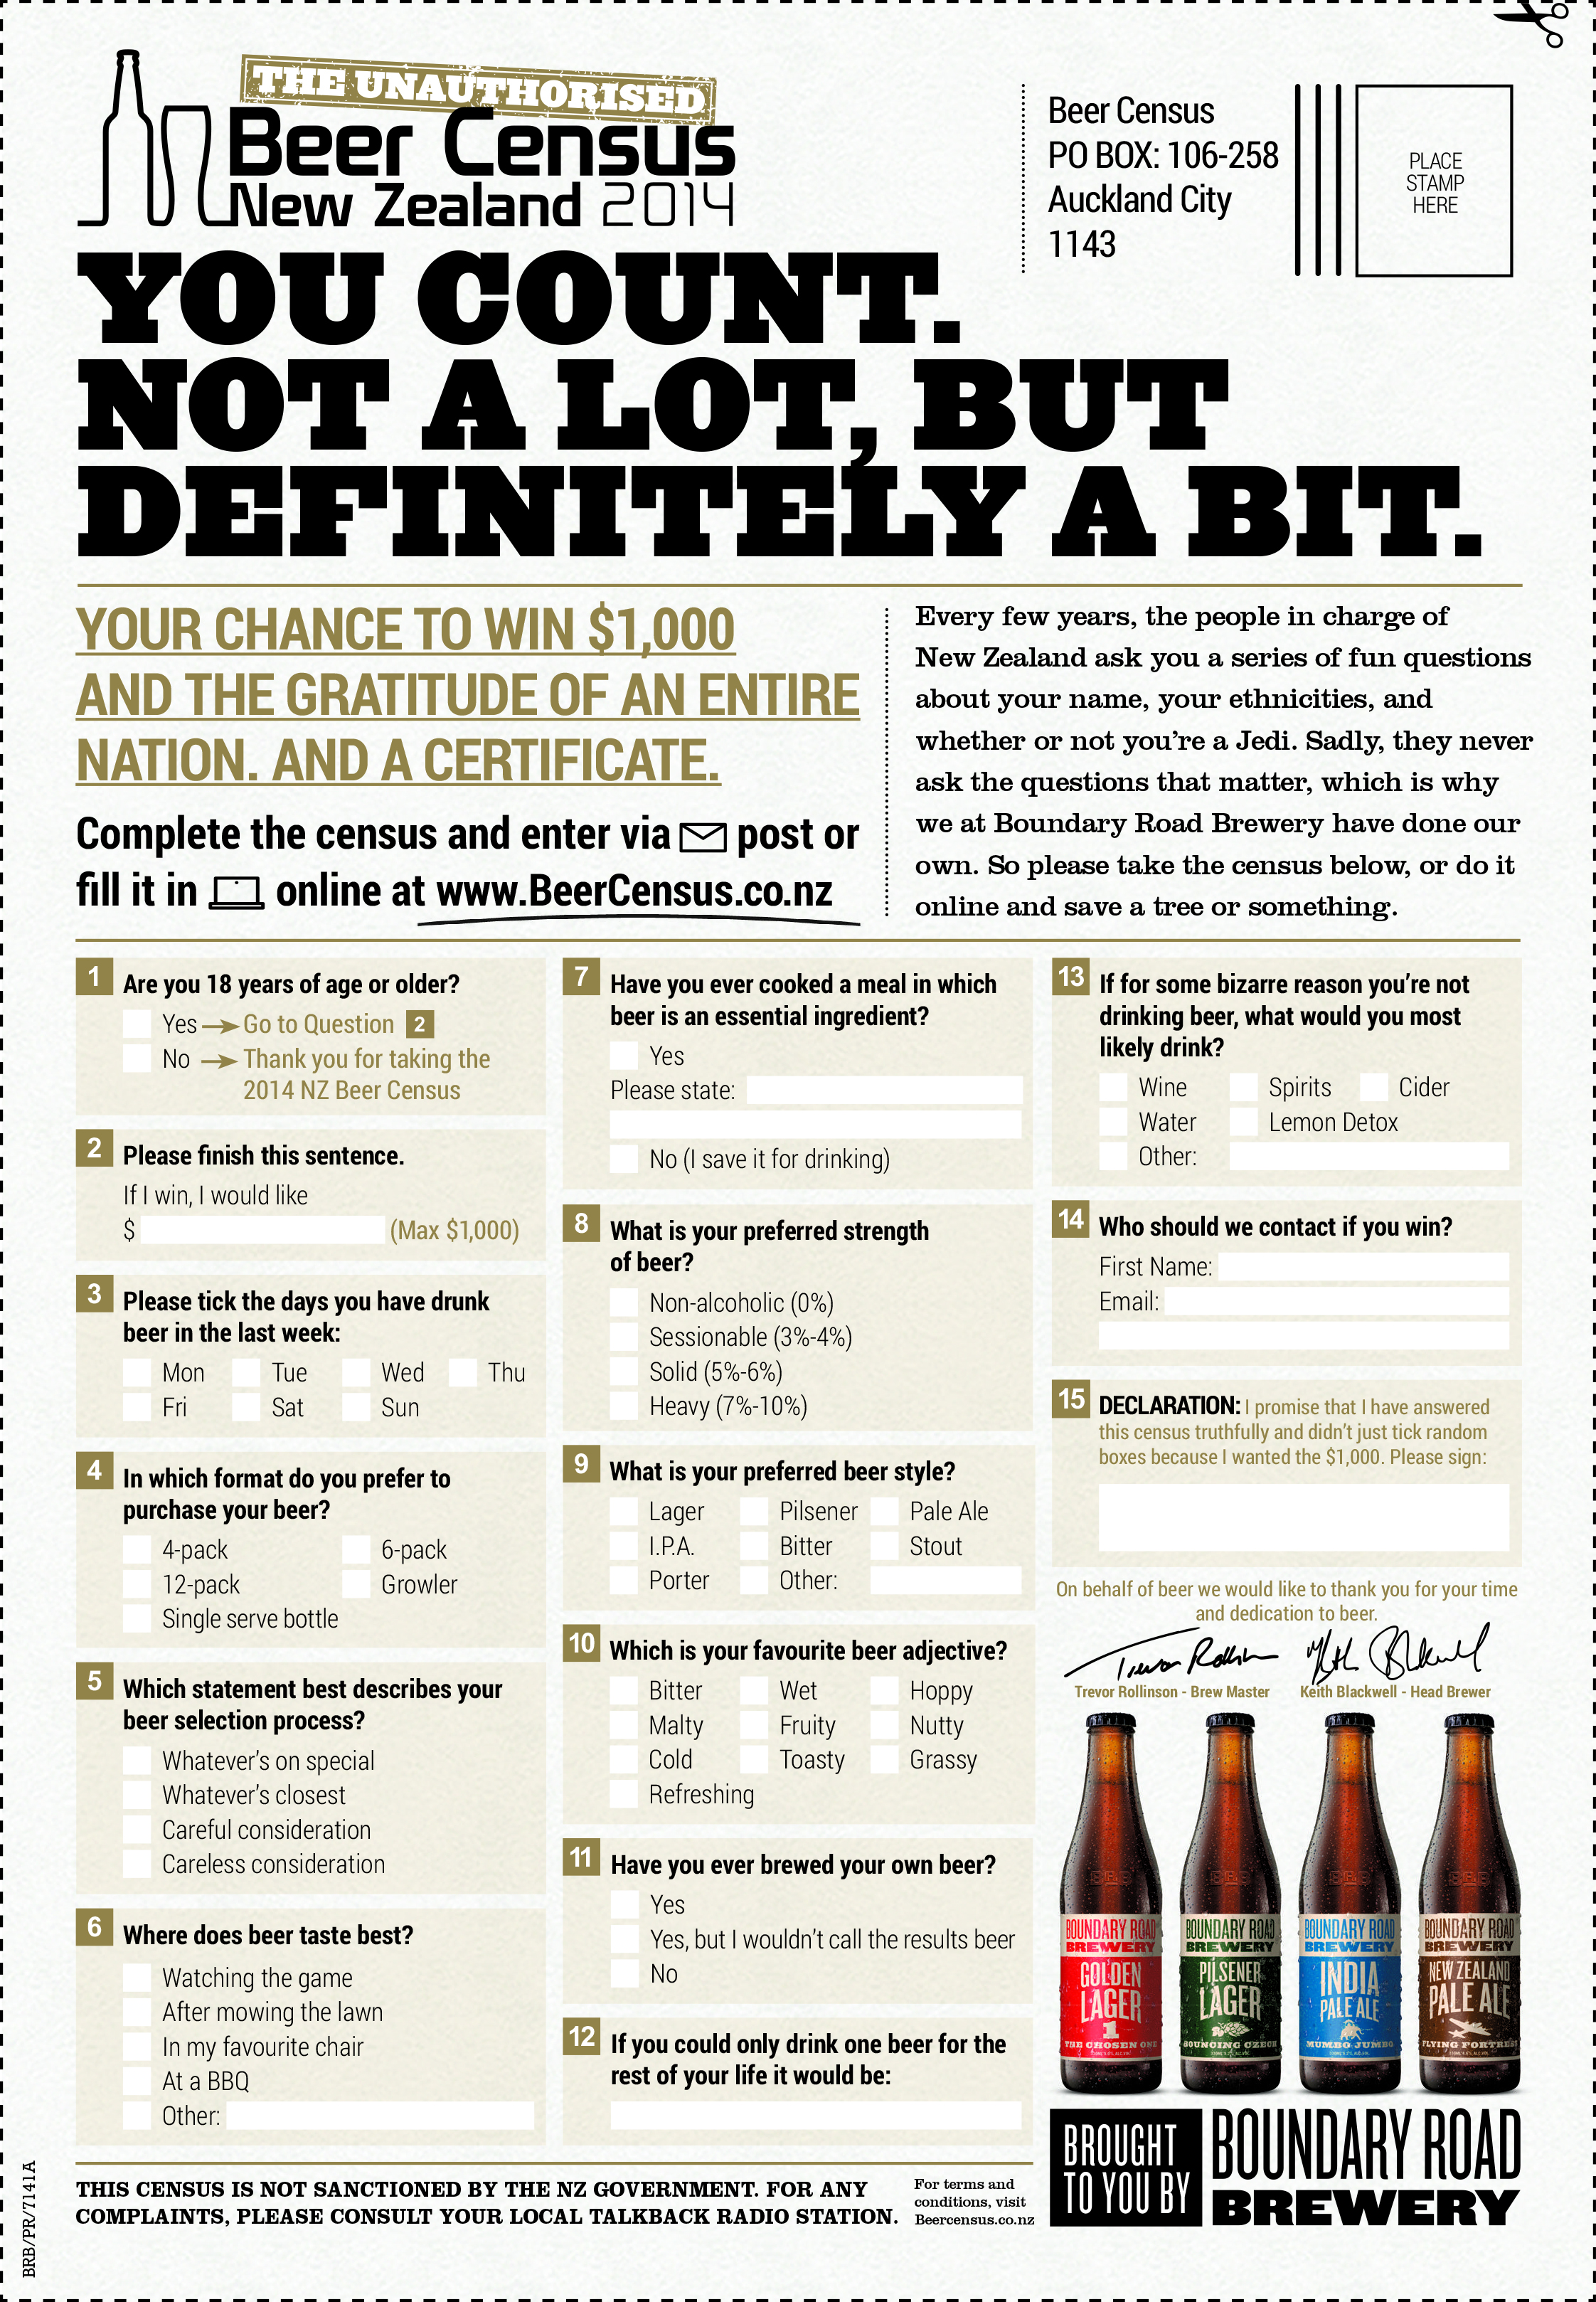 Print ad: Boundary Road Brewery: Beer Census